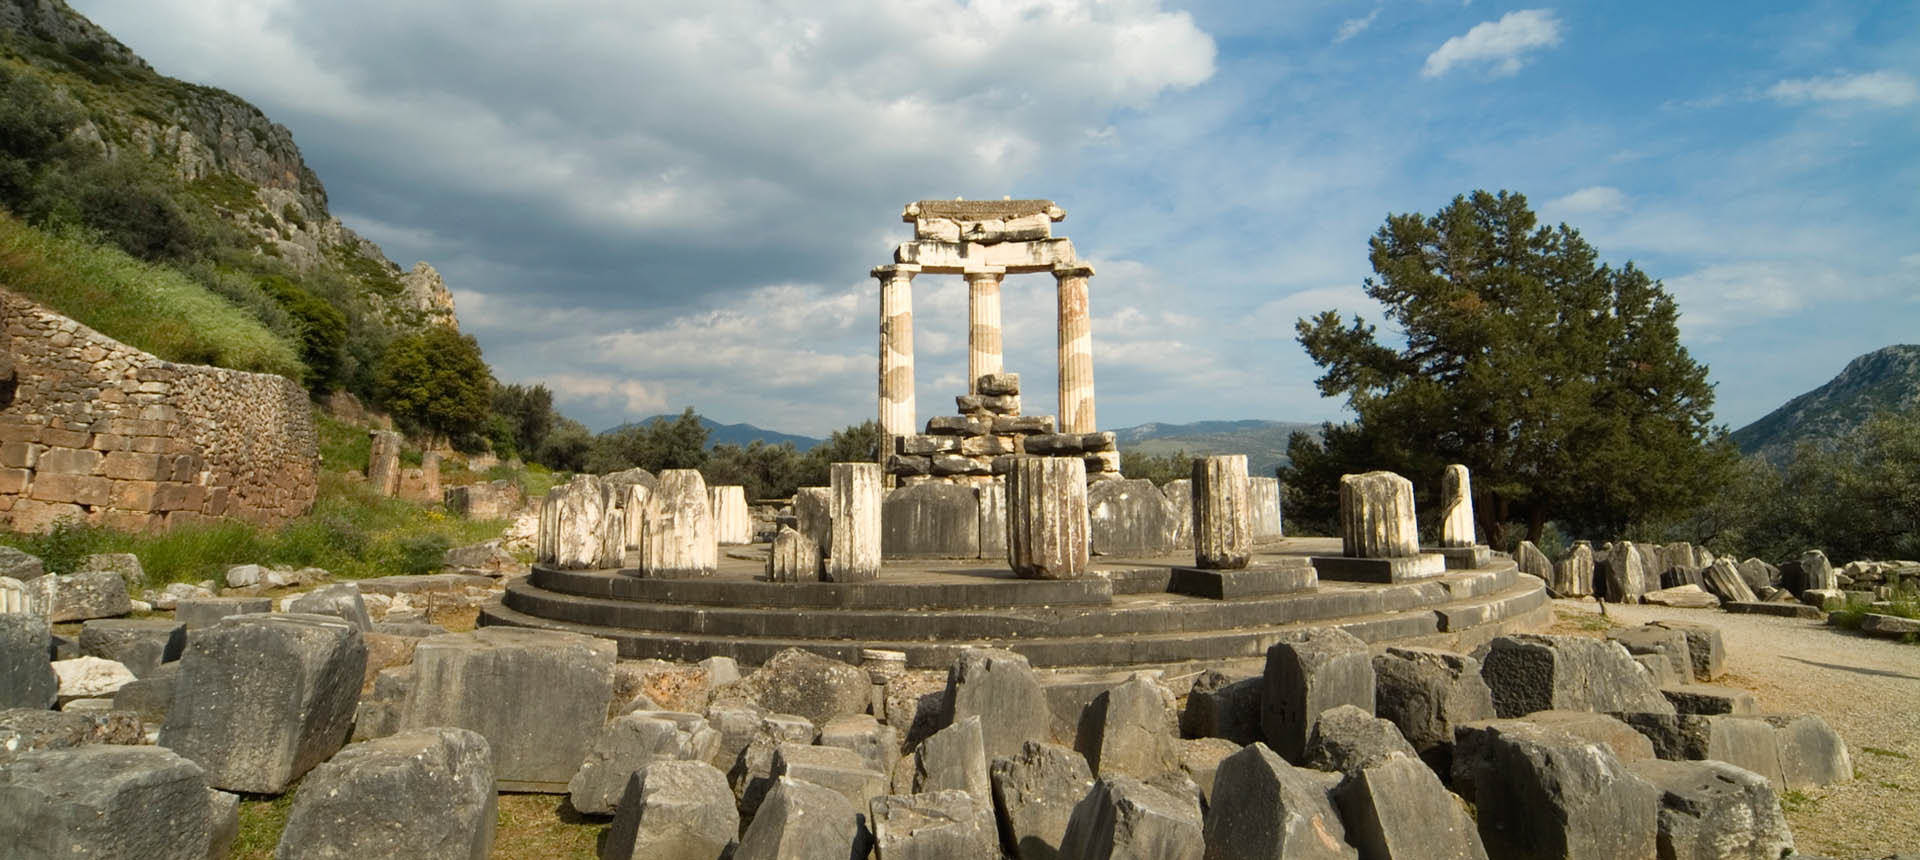 Grand Tour of Greece (7-day trip from Athens)